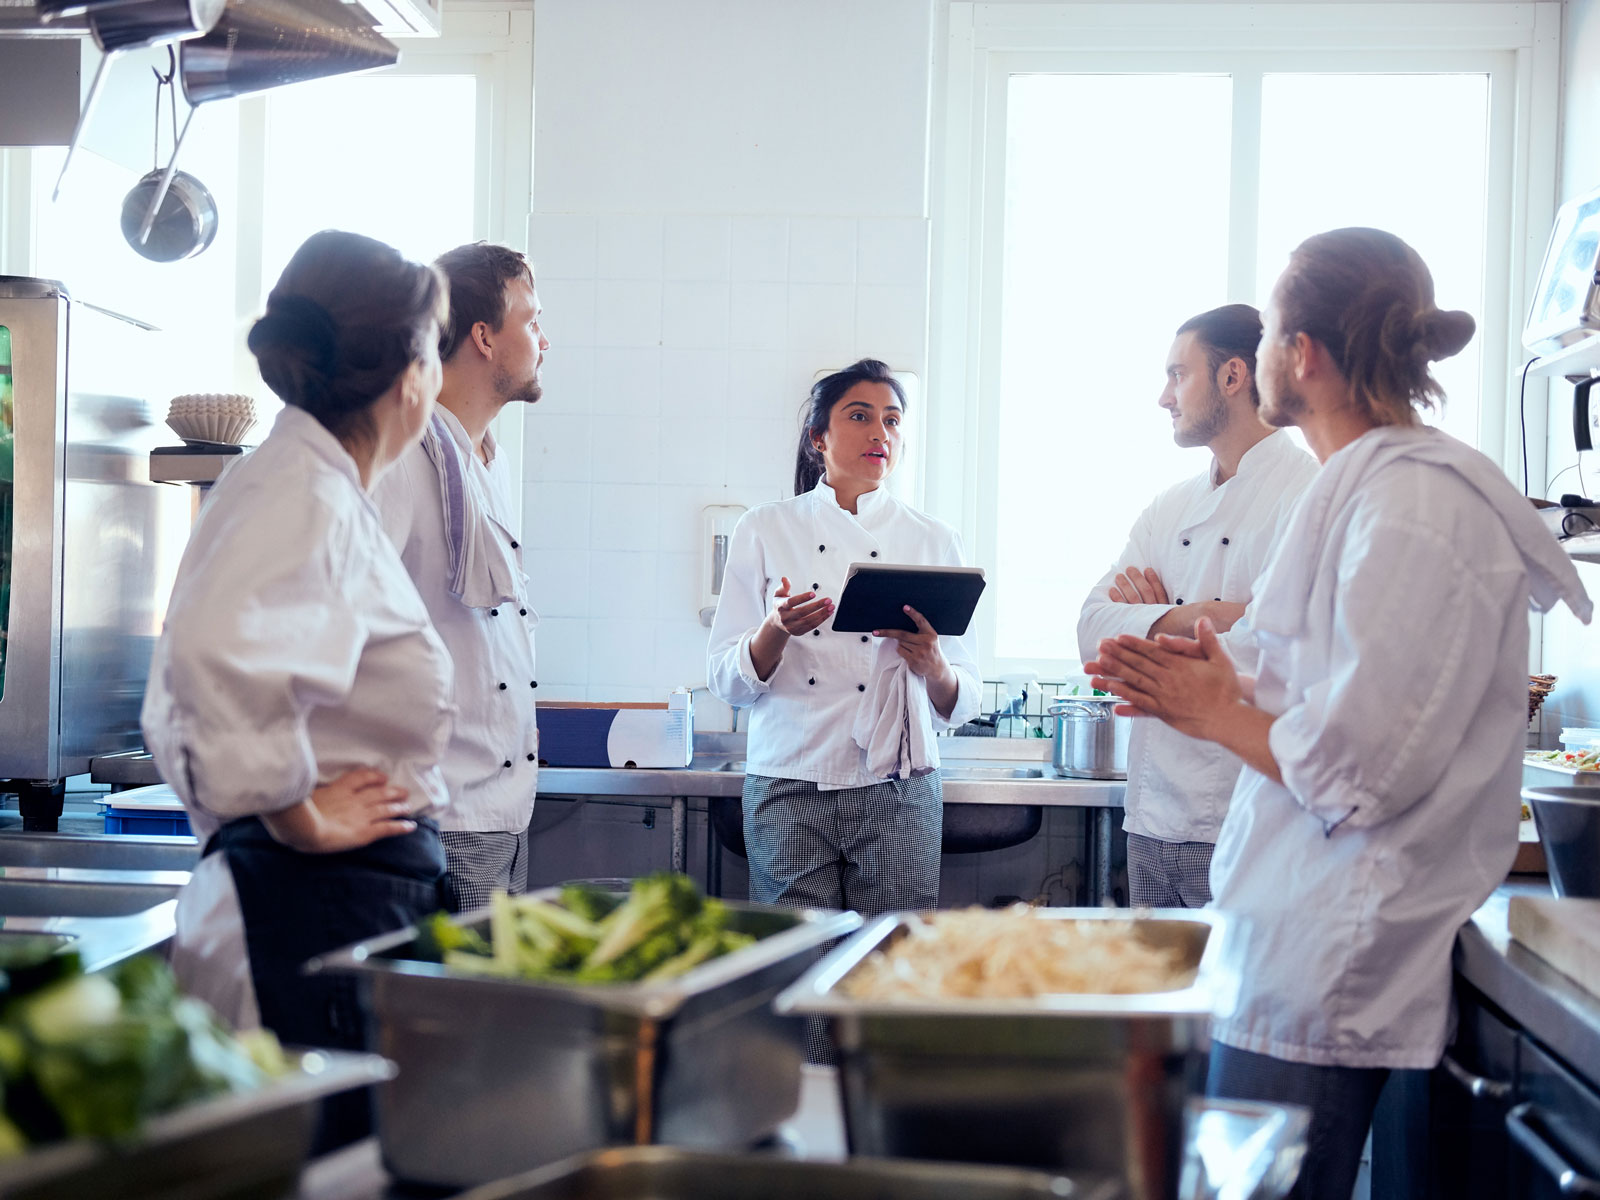 Chefs talking in a restaurant kitchen